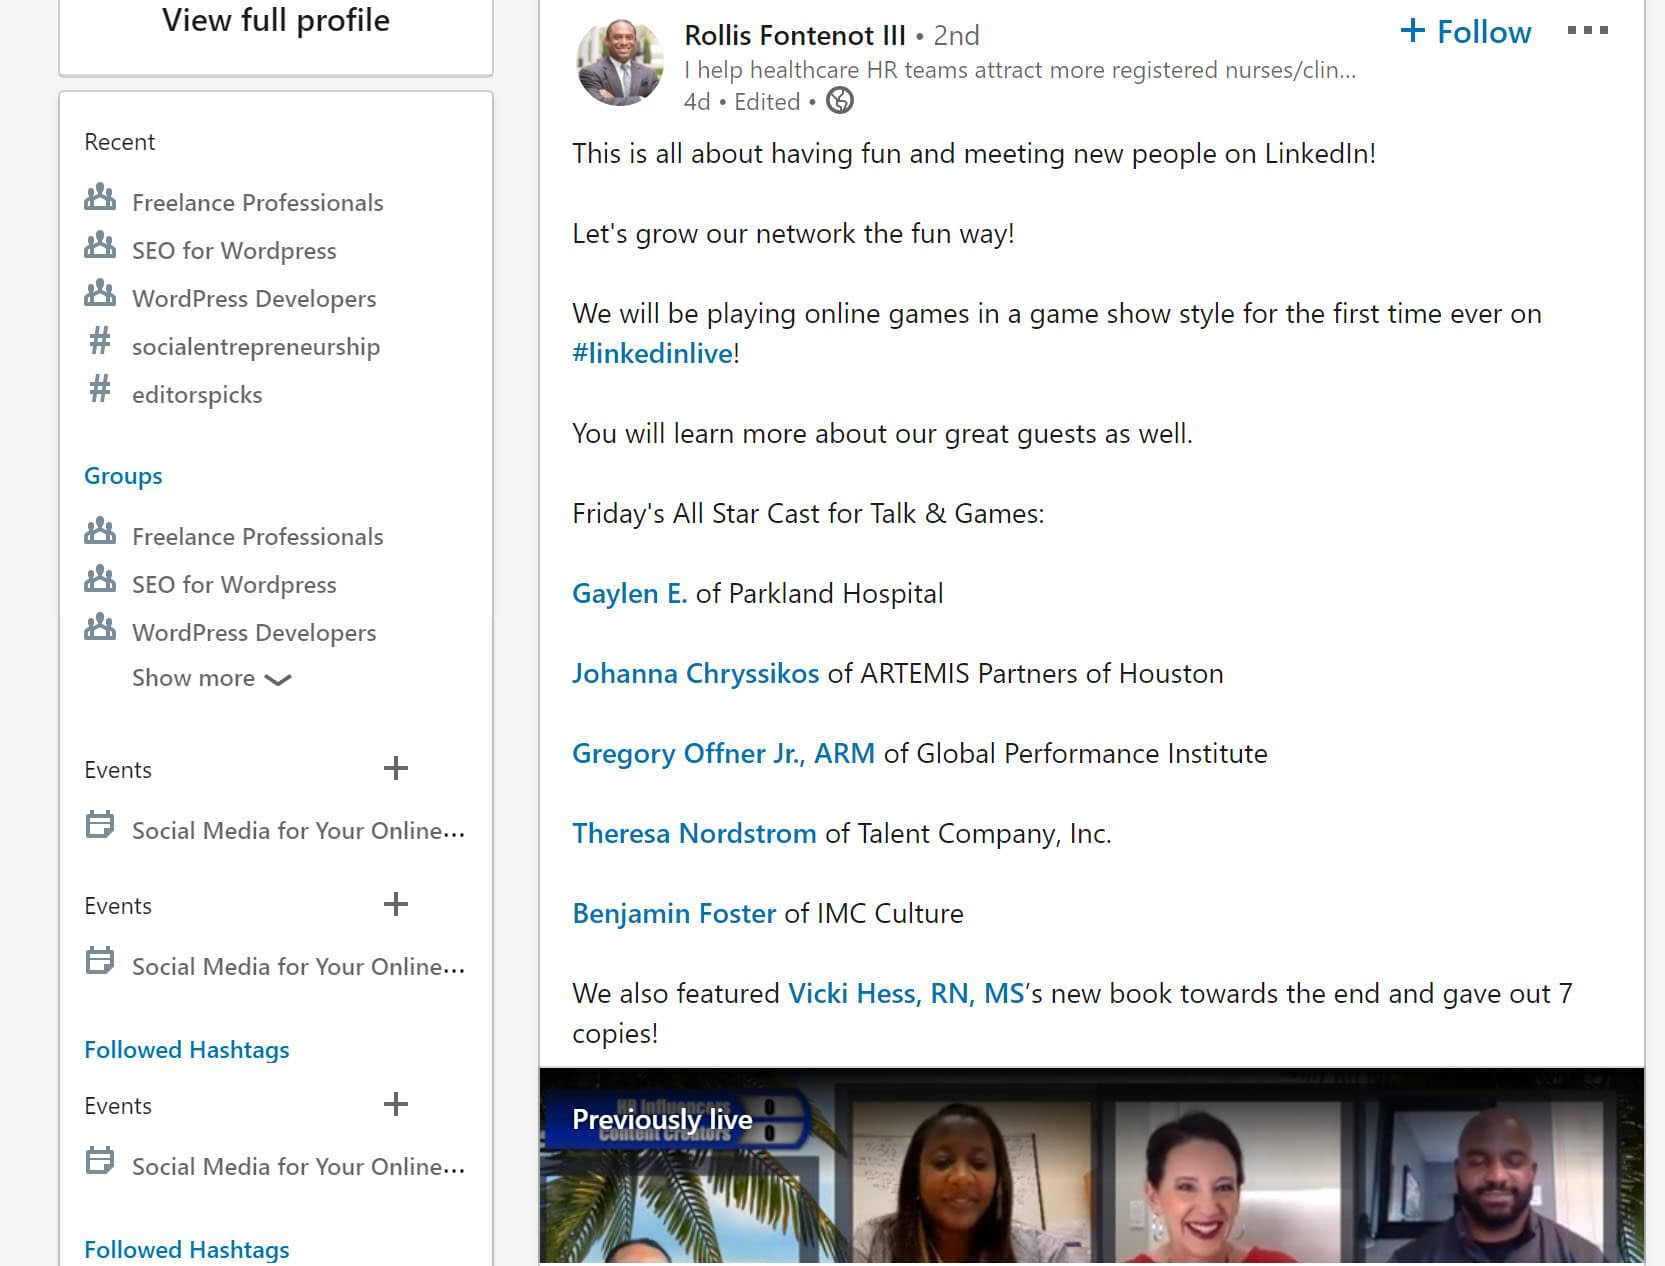 LinkedIn live streaming event